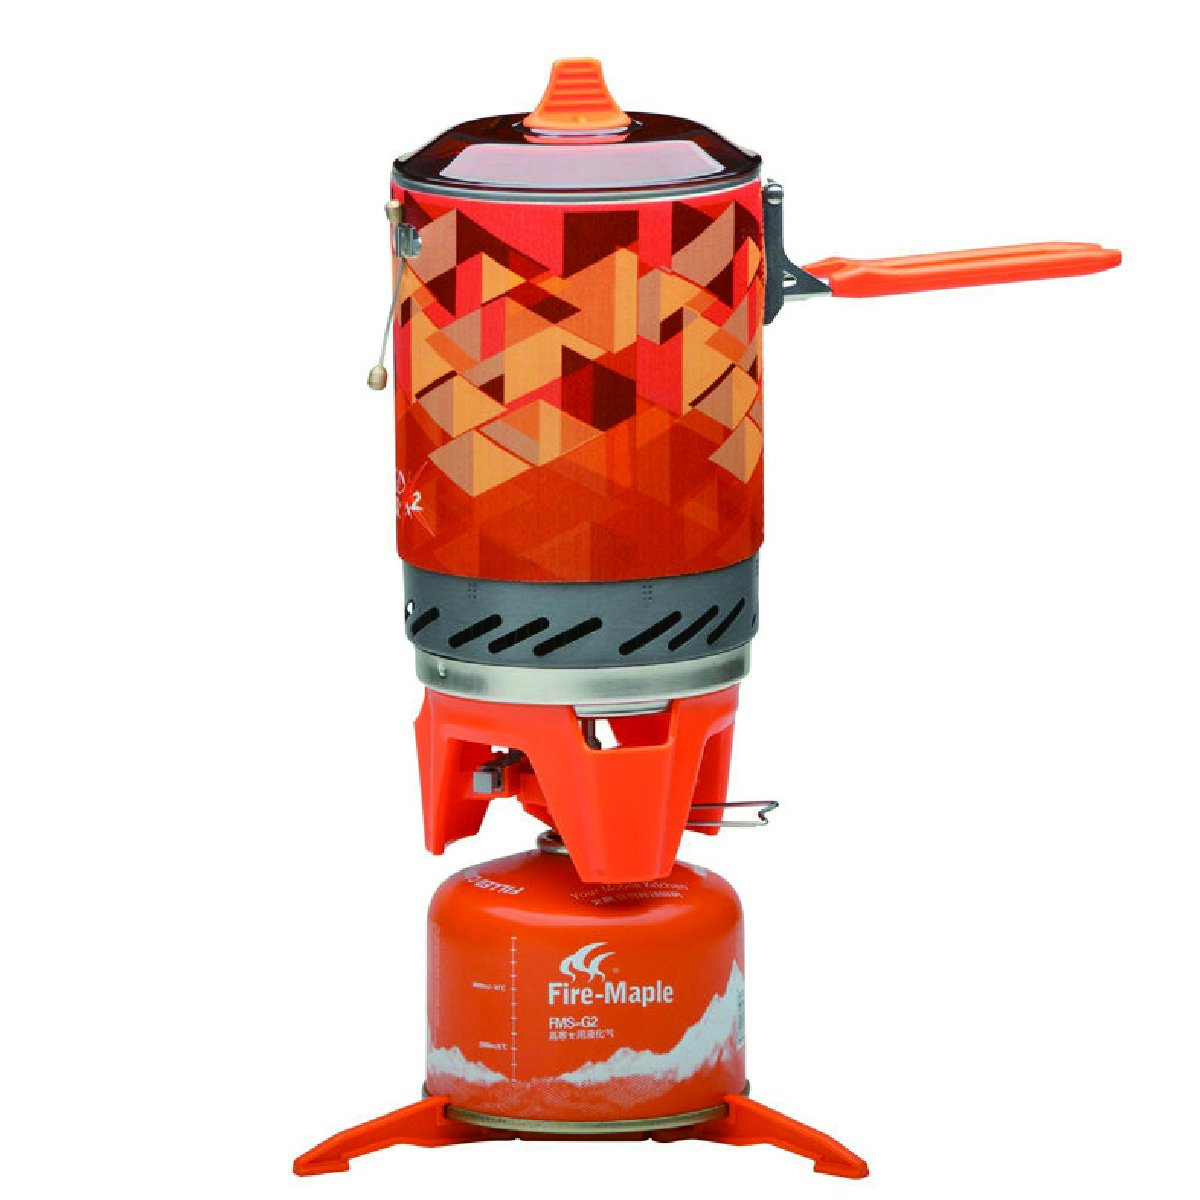 Fire-Maple Star FMS-X2 Outdoor Cooking System Portable Camp Stove with Piezo Ignition POT Support & Stand - Ultralight Compact Windproof High Heating Efficiency - Propane & Butane Canisters - Camping by Fire-maple B013PRD4IE